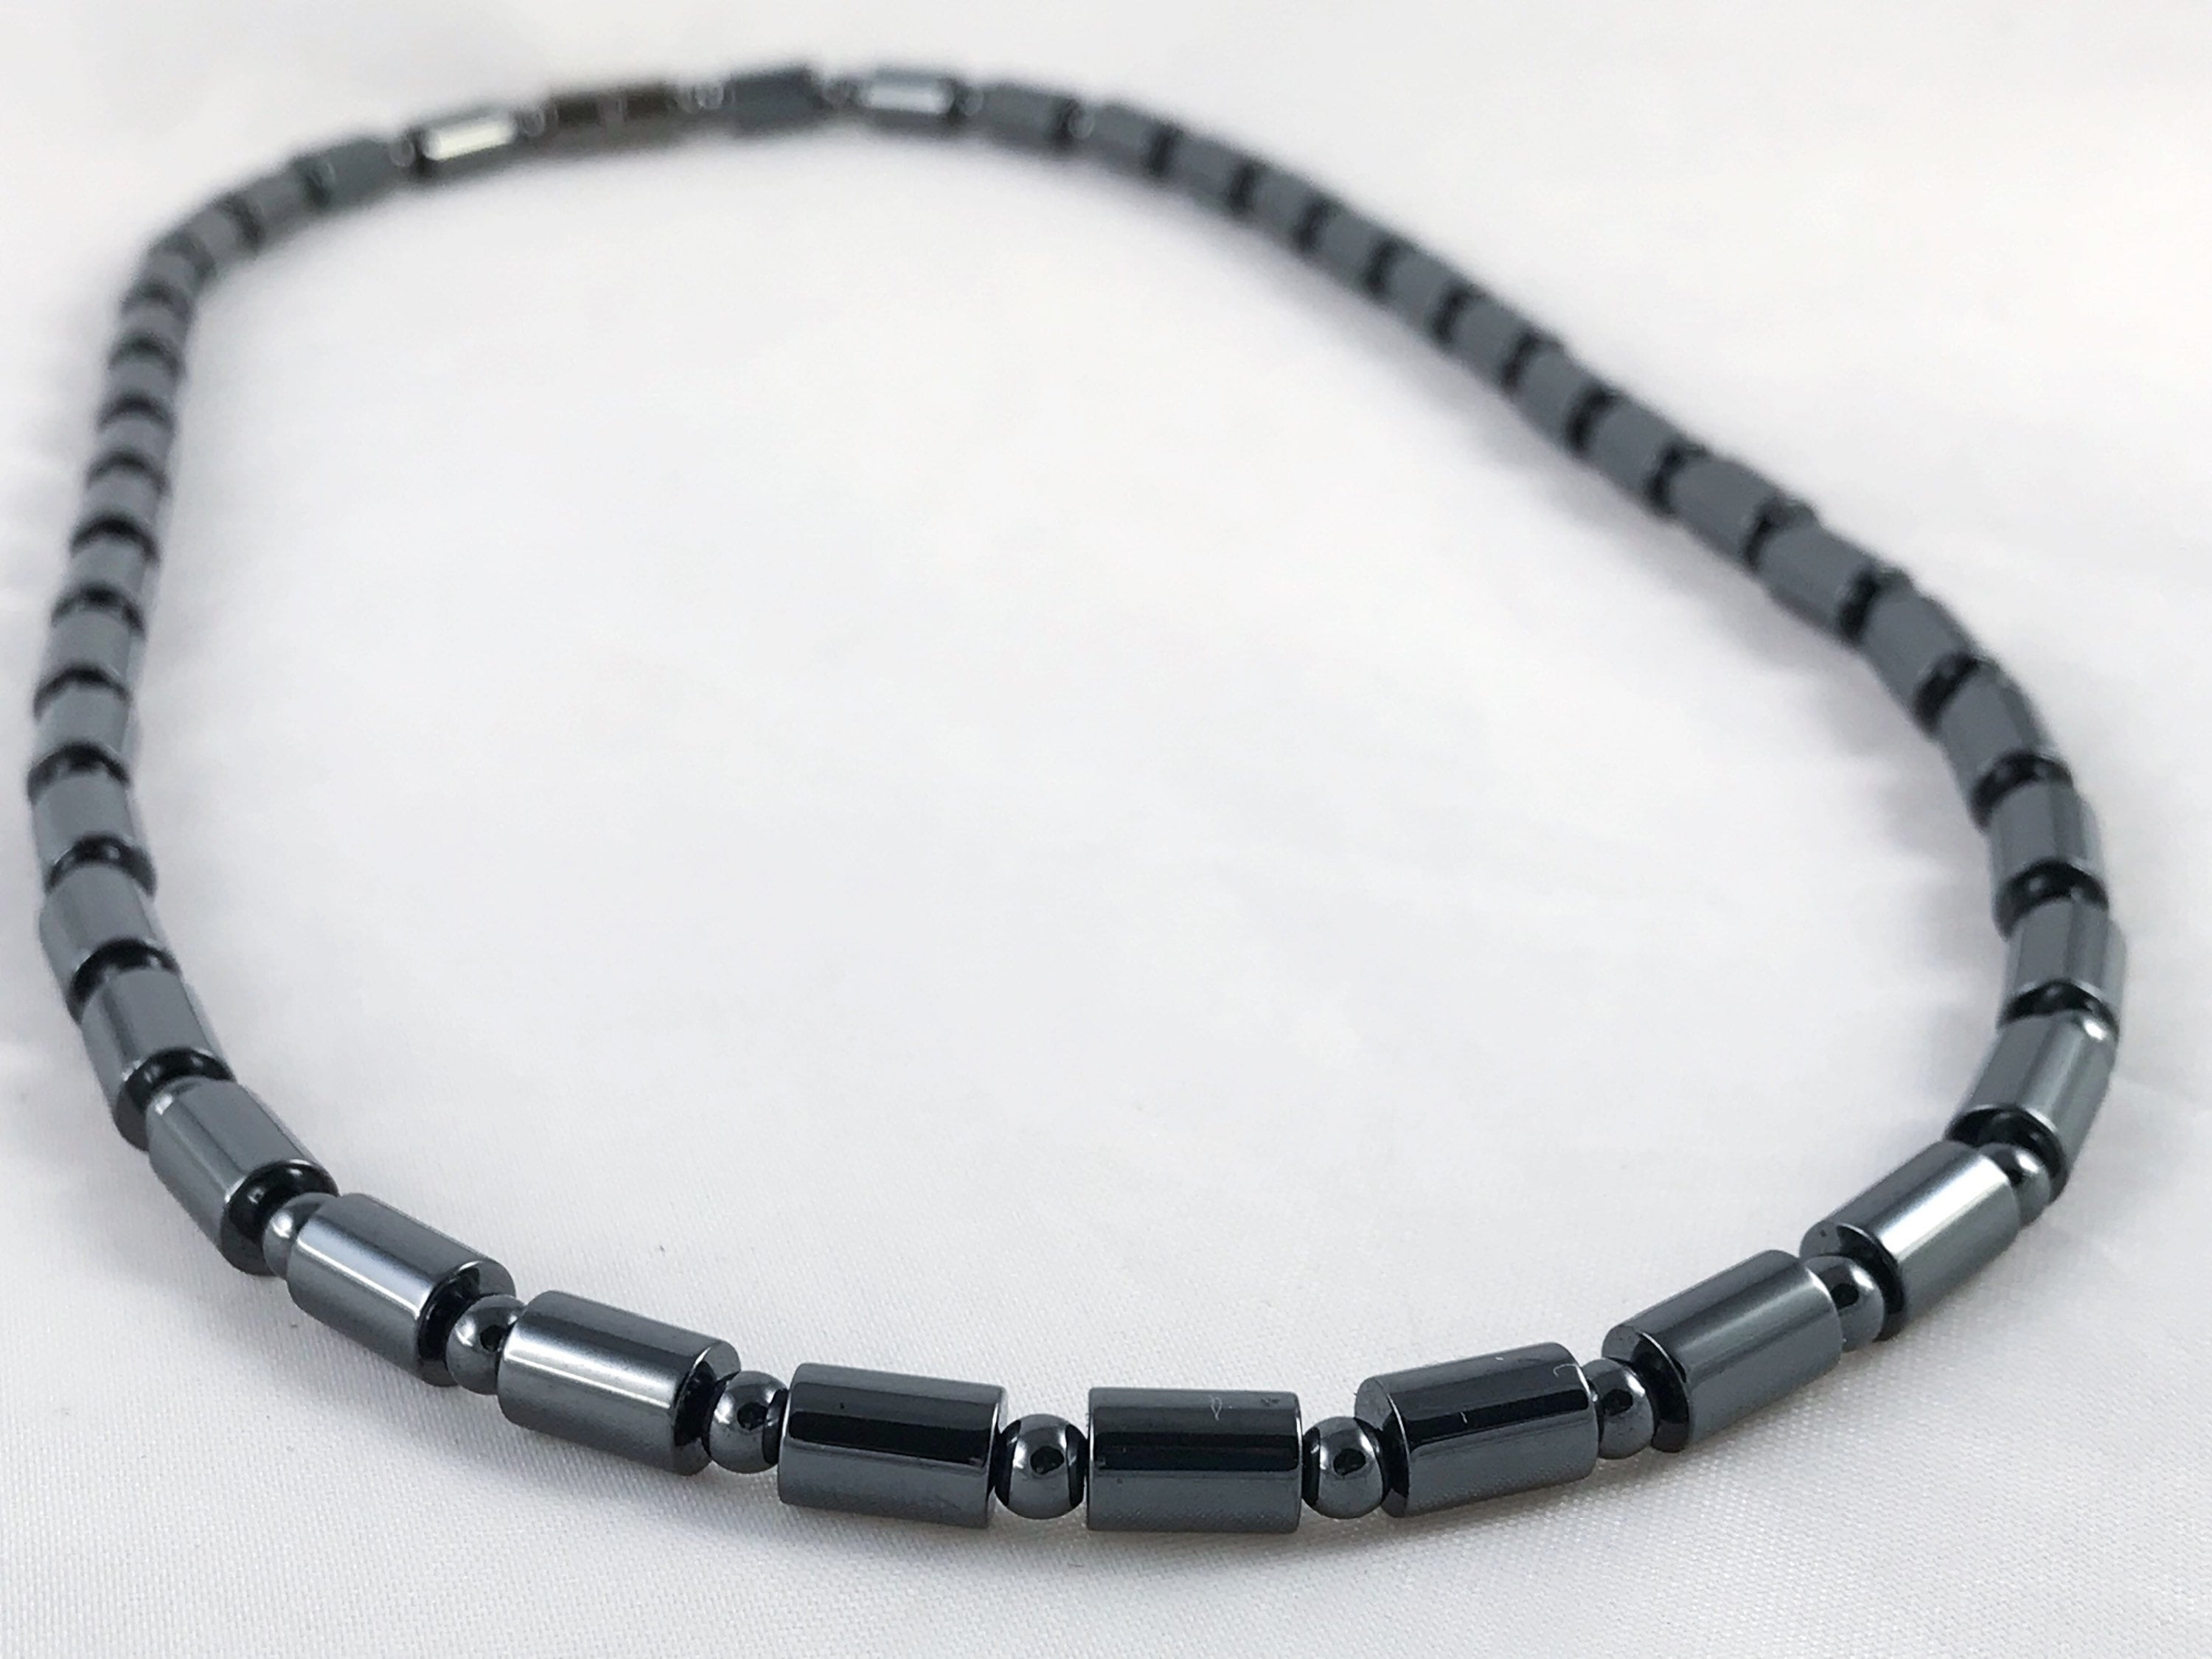 handmade tictail riverpebblestonewear jewellery stonewear lava bracelet hematite focal jewelry with man riverpebble iron and beads mens pyrite